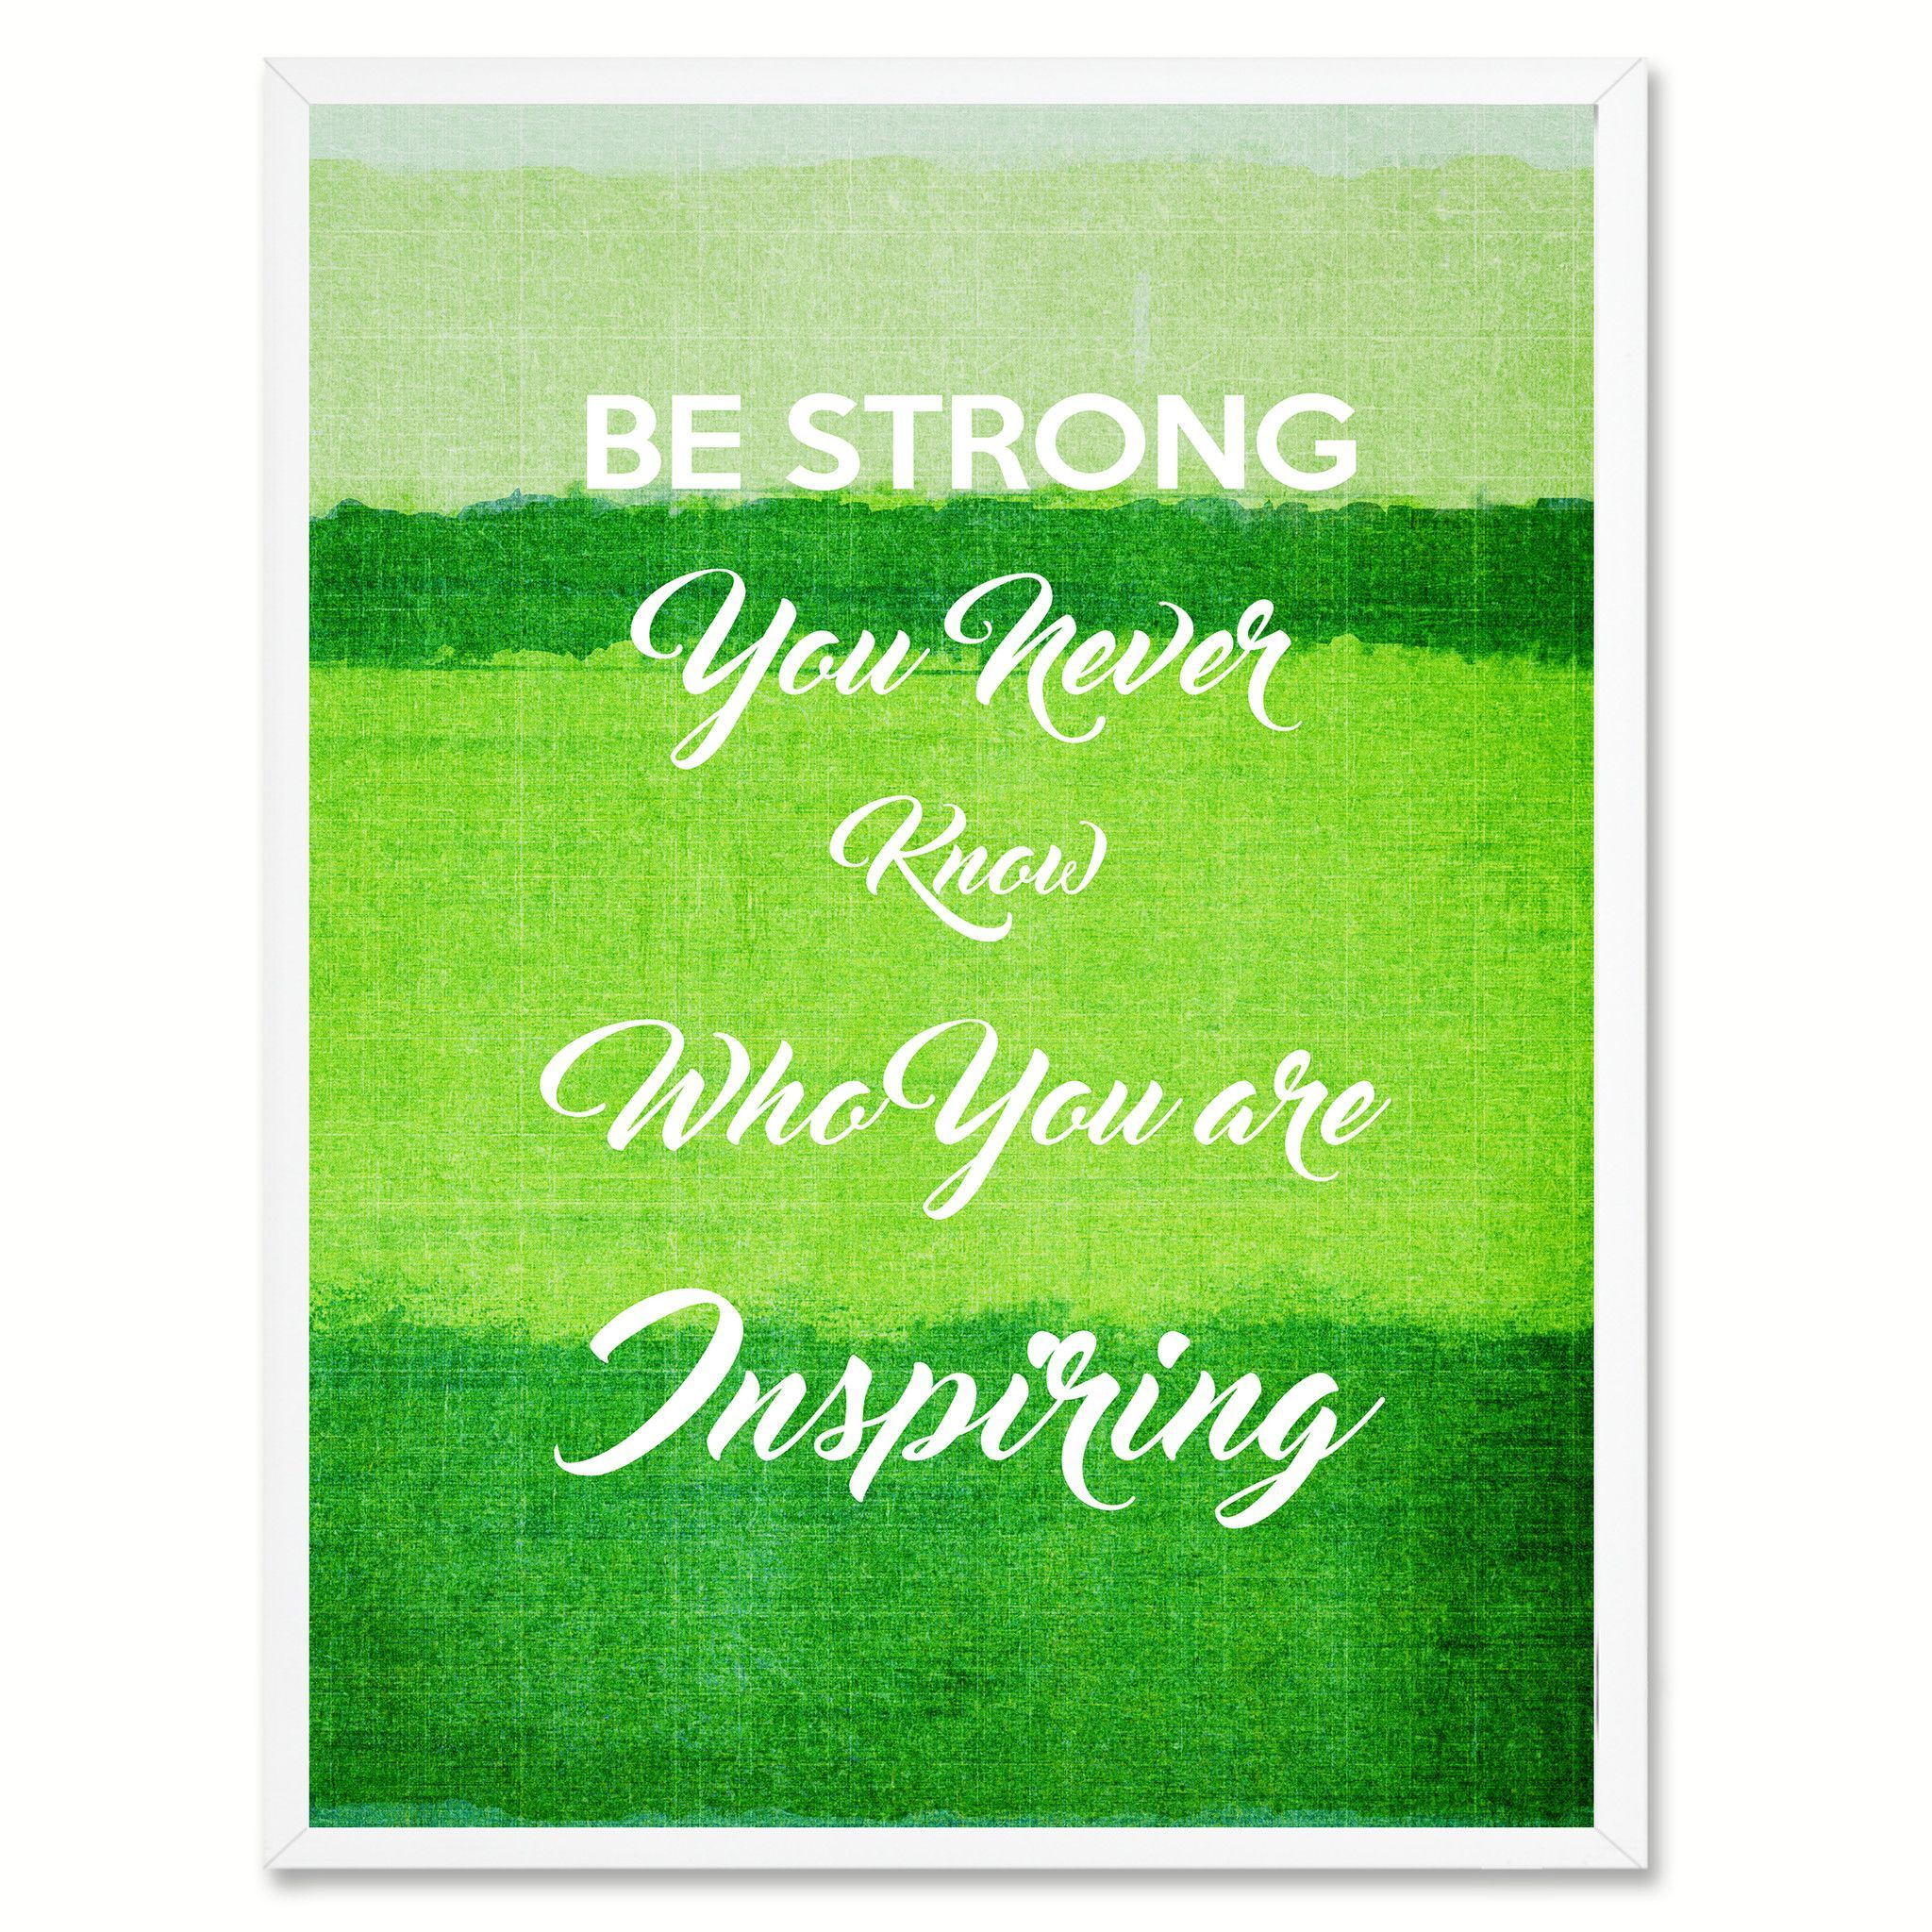 Be Strong You never know who you are Inspiring Motivation Quote Saying Gift Ideas Home Décor Wall Art